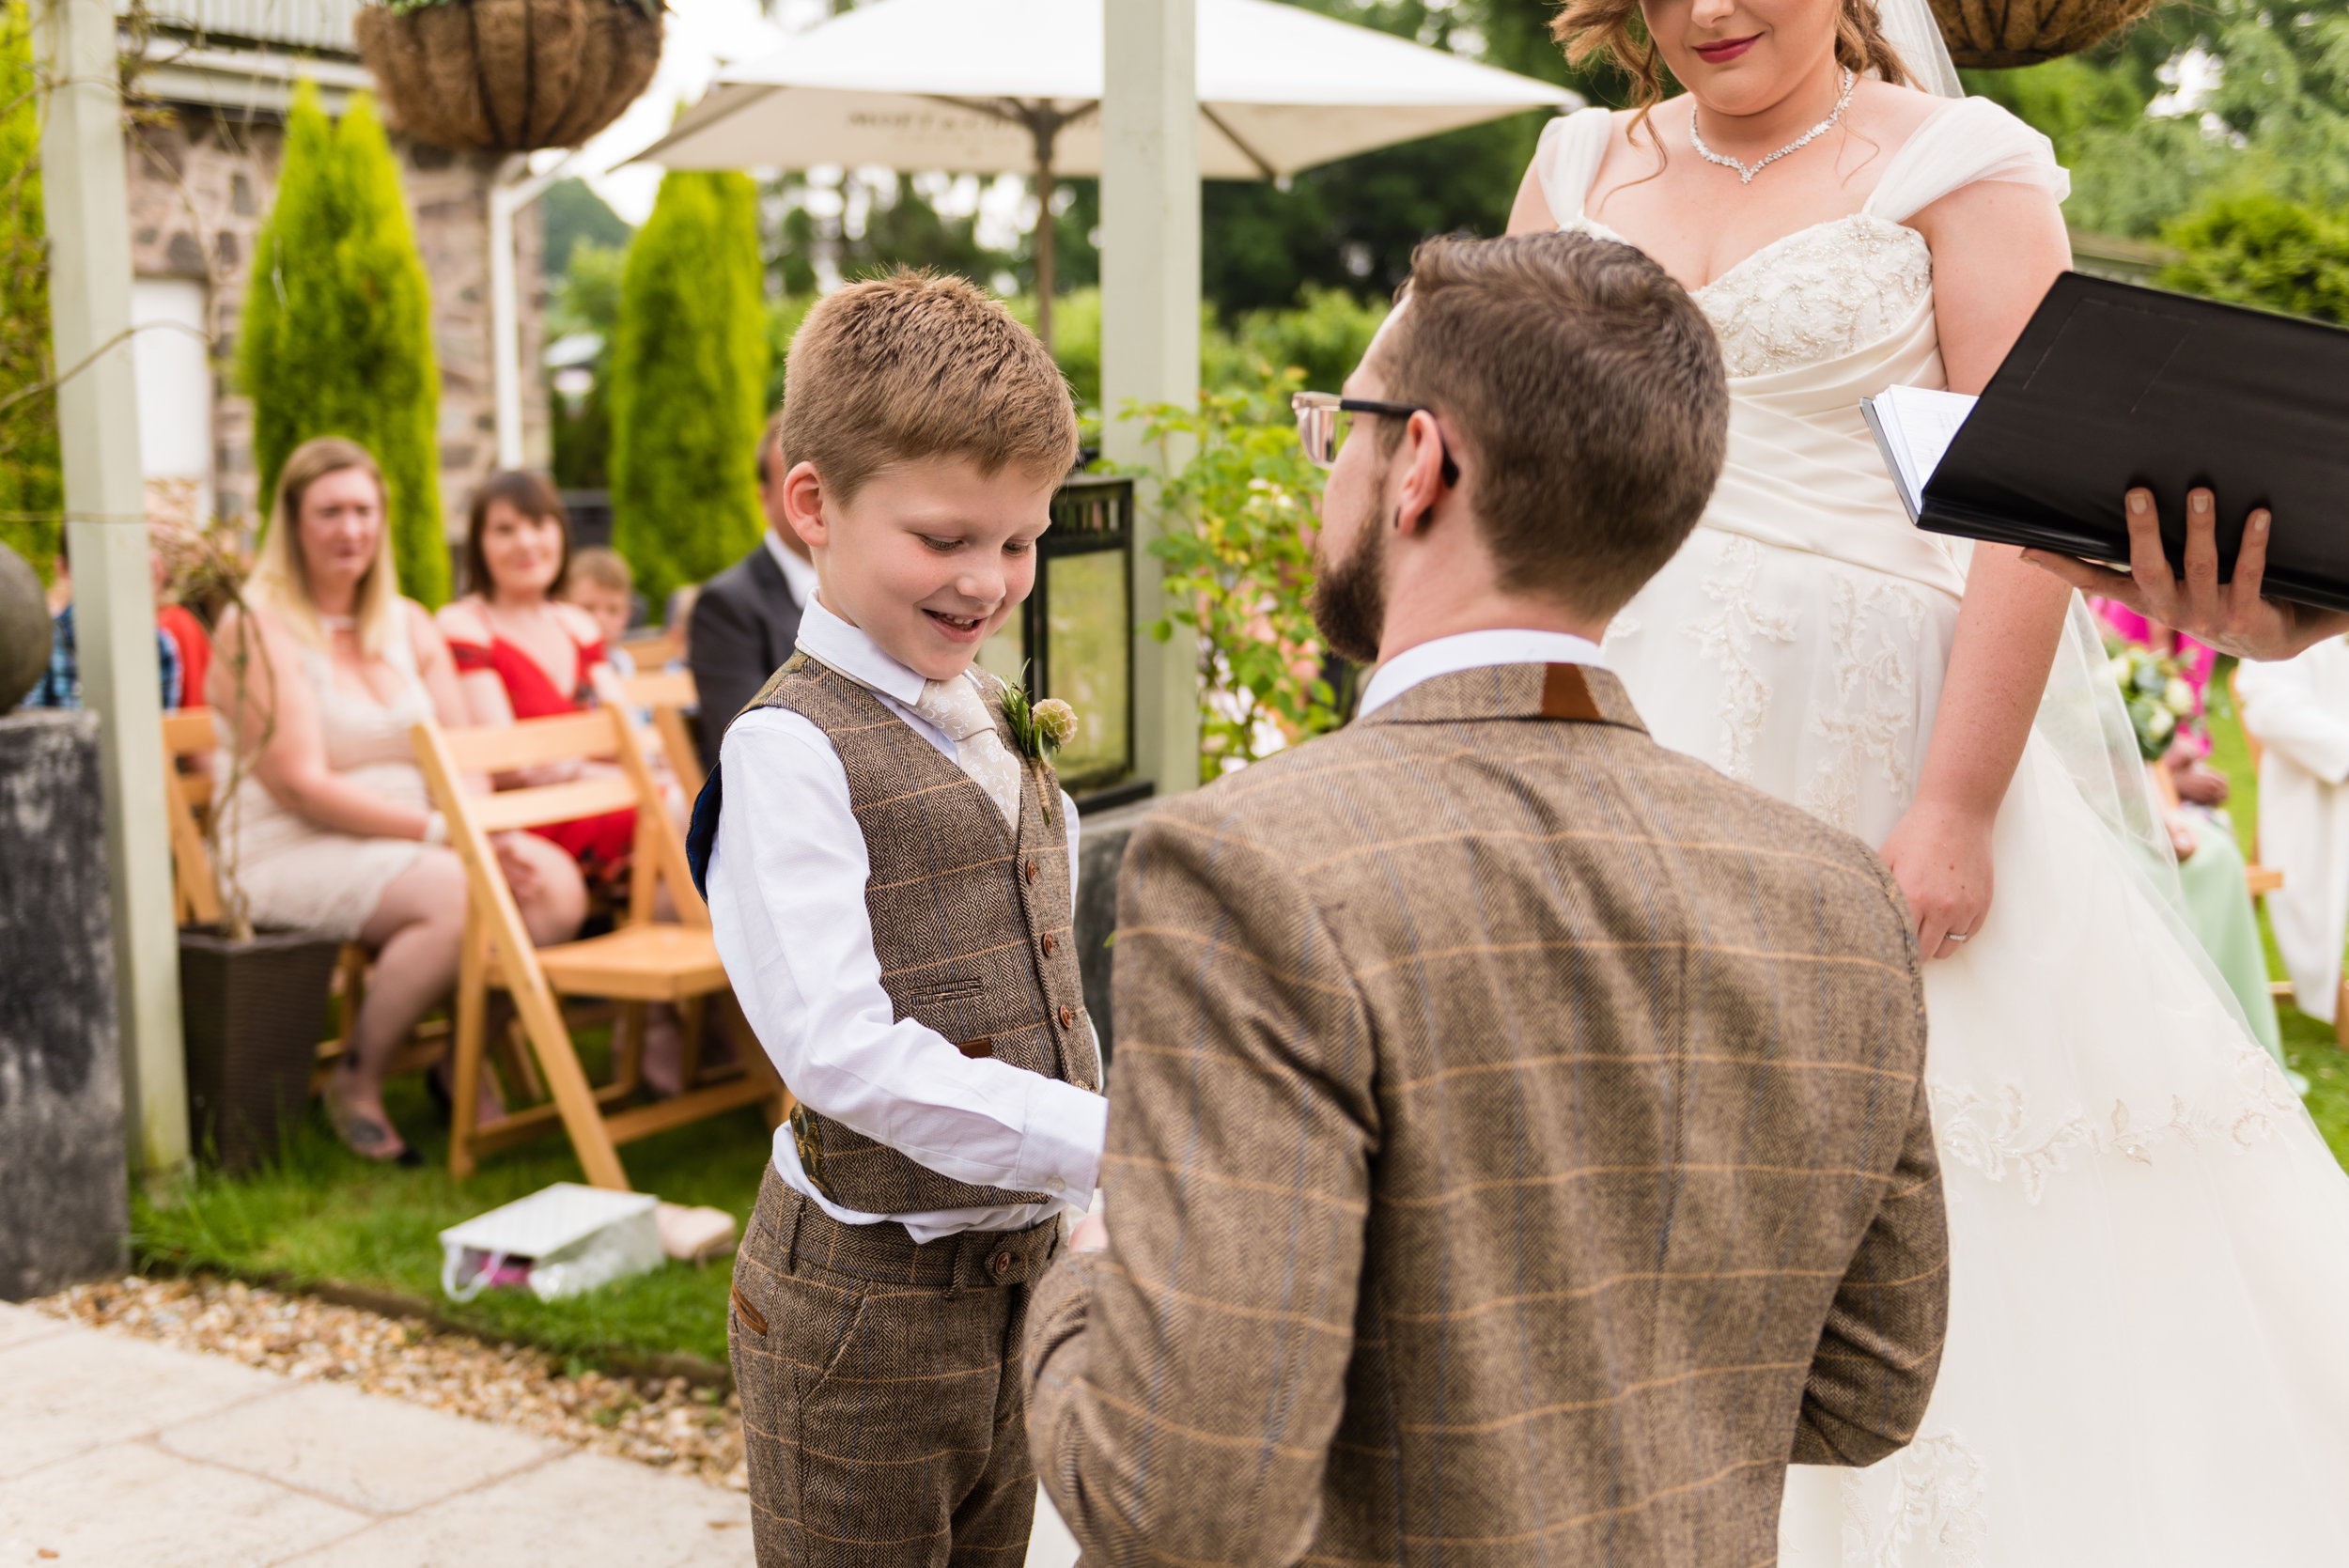 Doting Stepfather's emotional vows to stepson